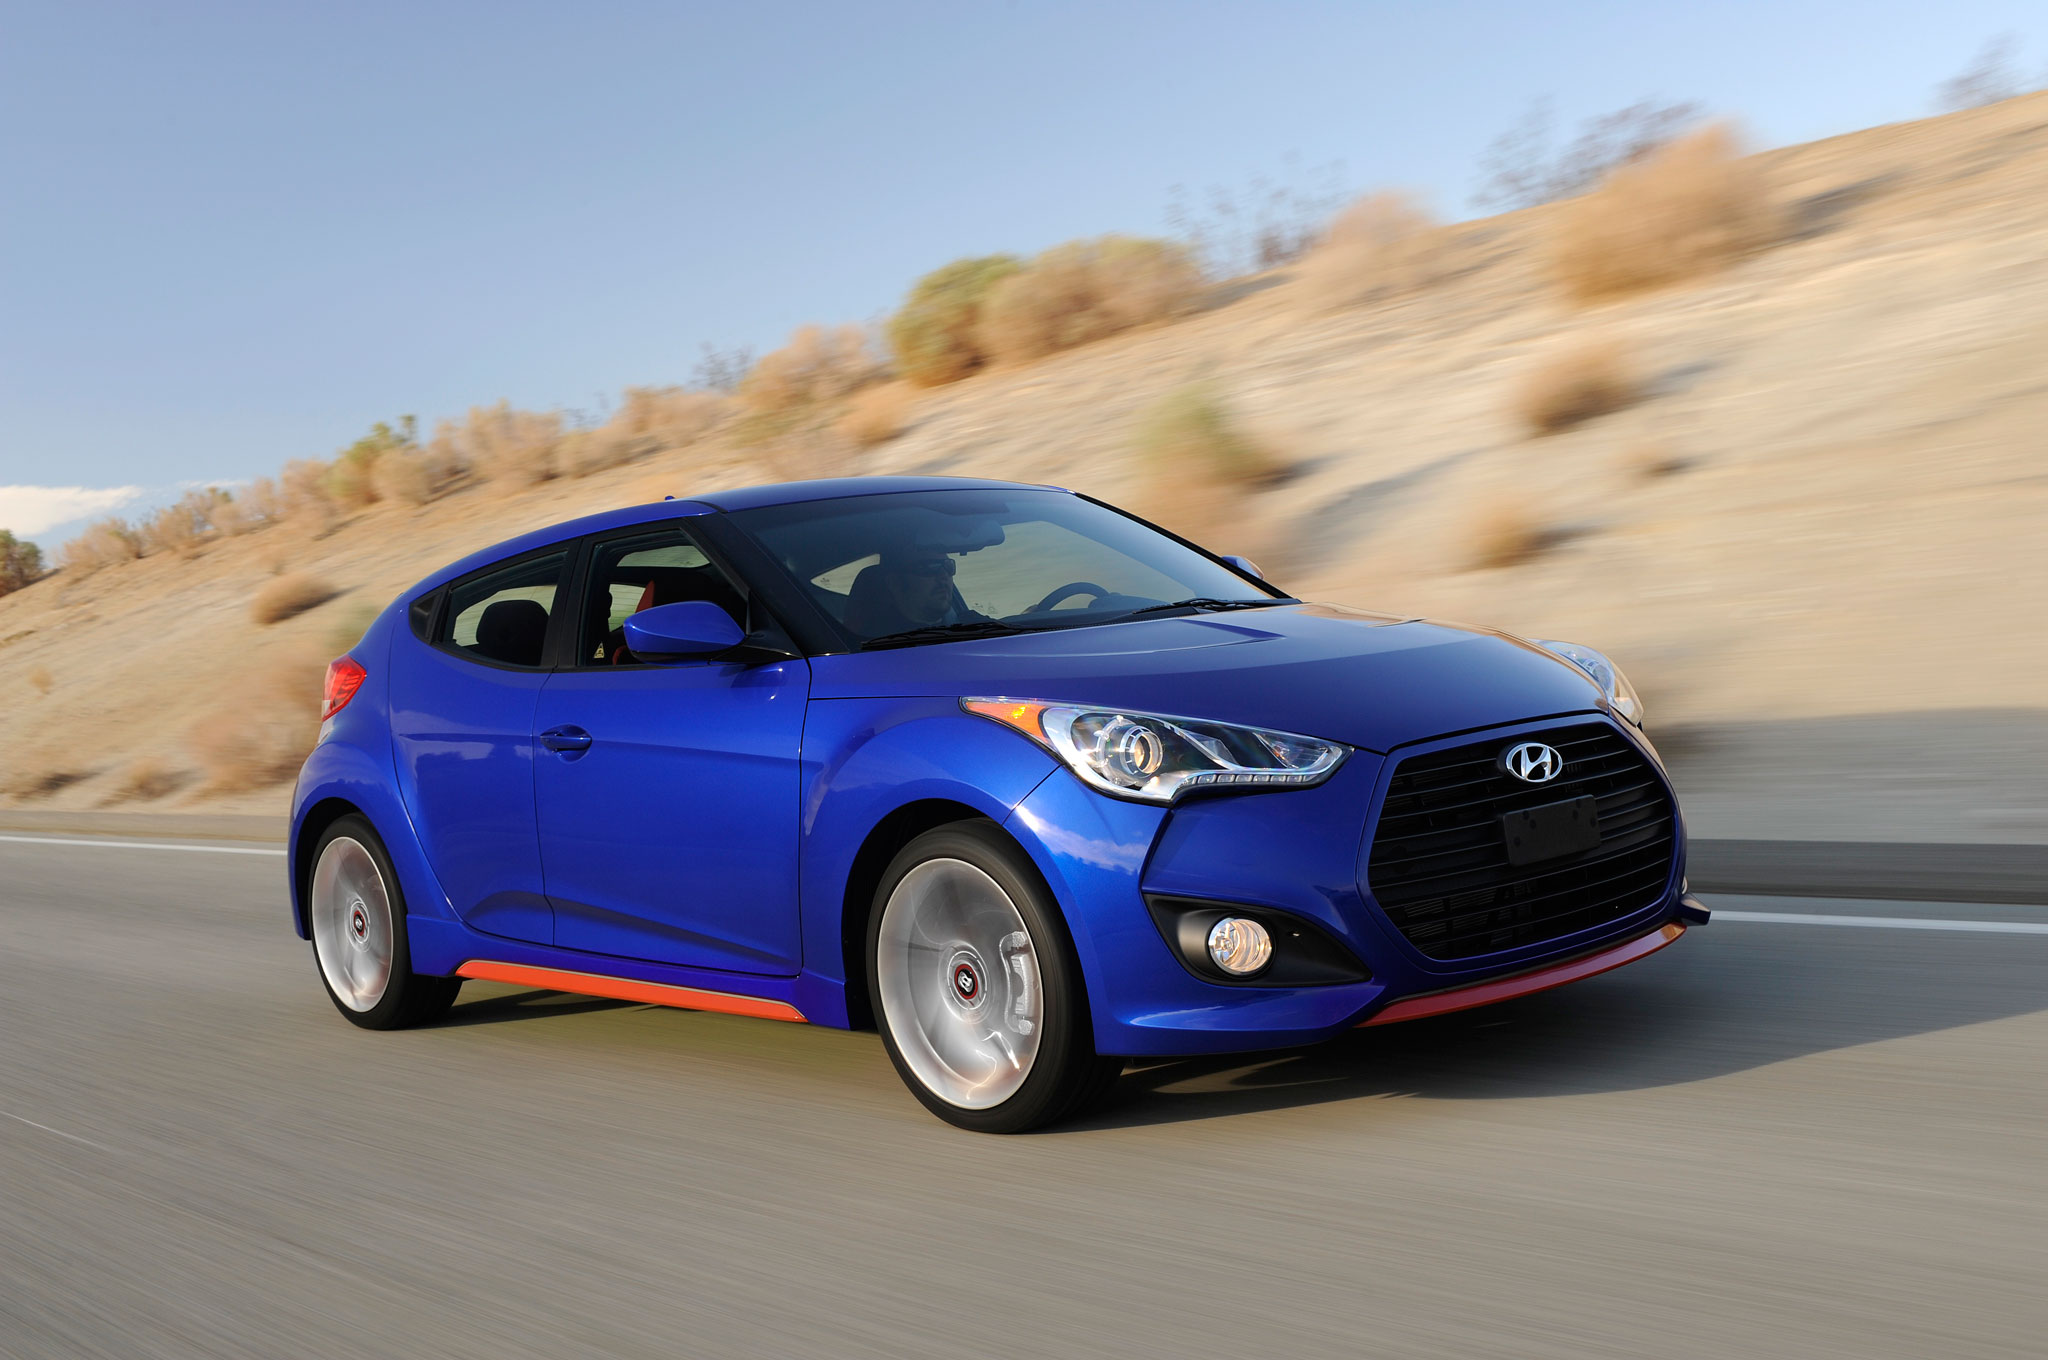 2014 Hyundai Veloster Turbo R Spec Front Right Side View2